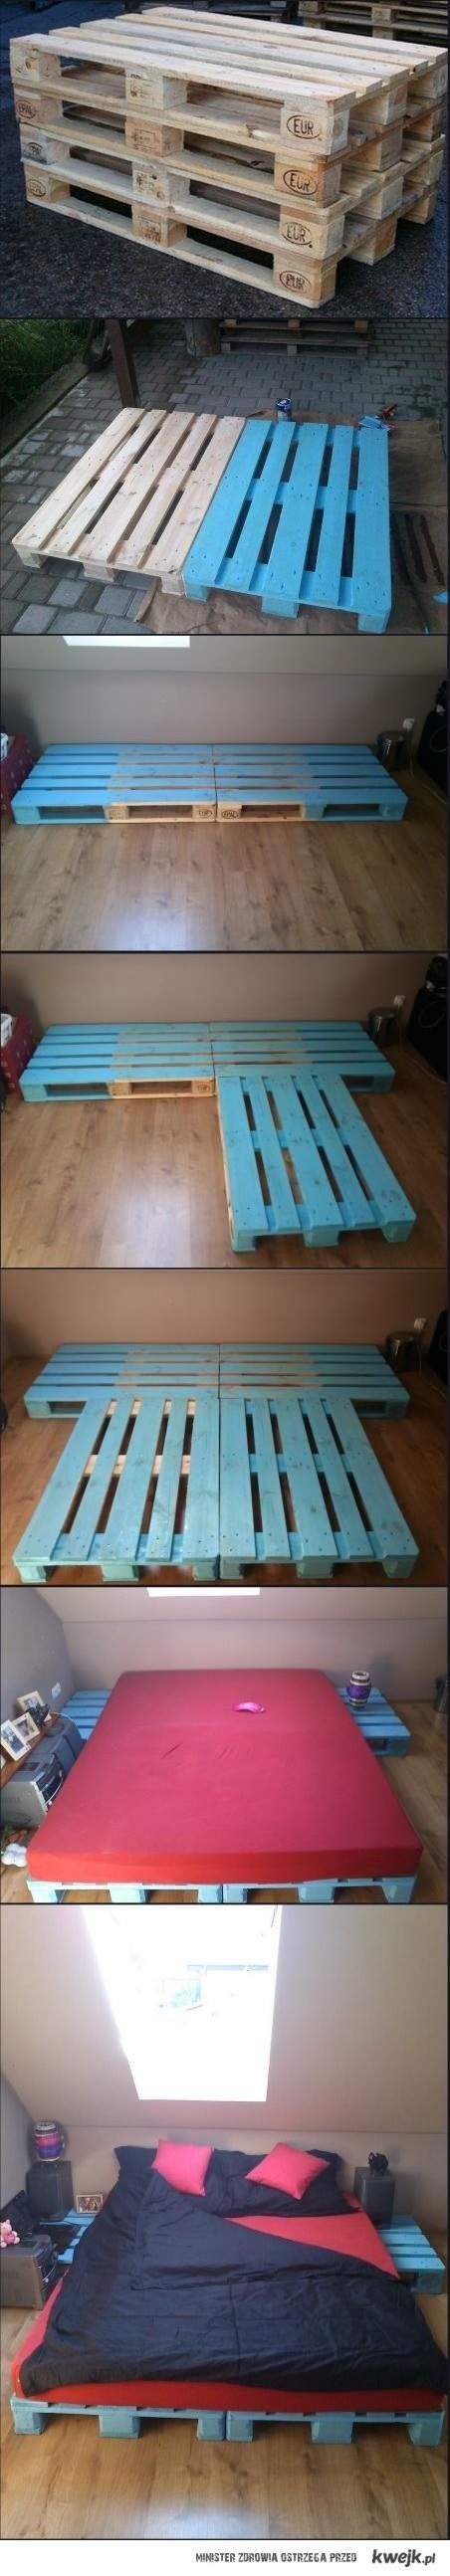 Cheap DIY Bed Frame made from pallets. Great idea for students or temporary house guests. What the heck is up with all these pallet projects on Pinterest?! This one is so bad...I would never have house guests sleeping on wooden pallets! Can you imagine how uncomfortable this would be?! Hello major back pain....